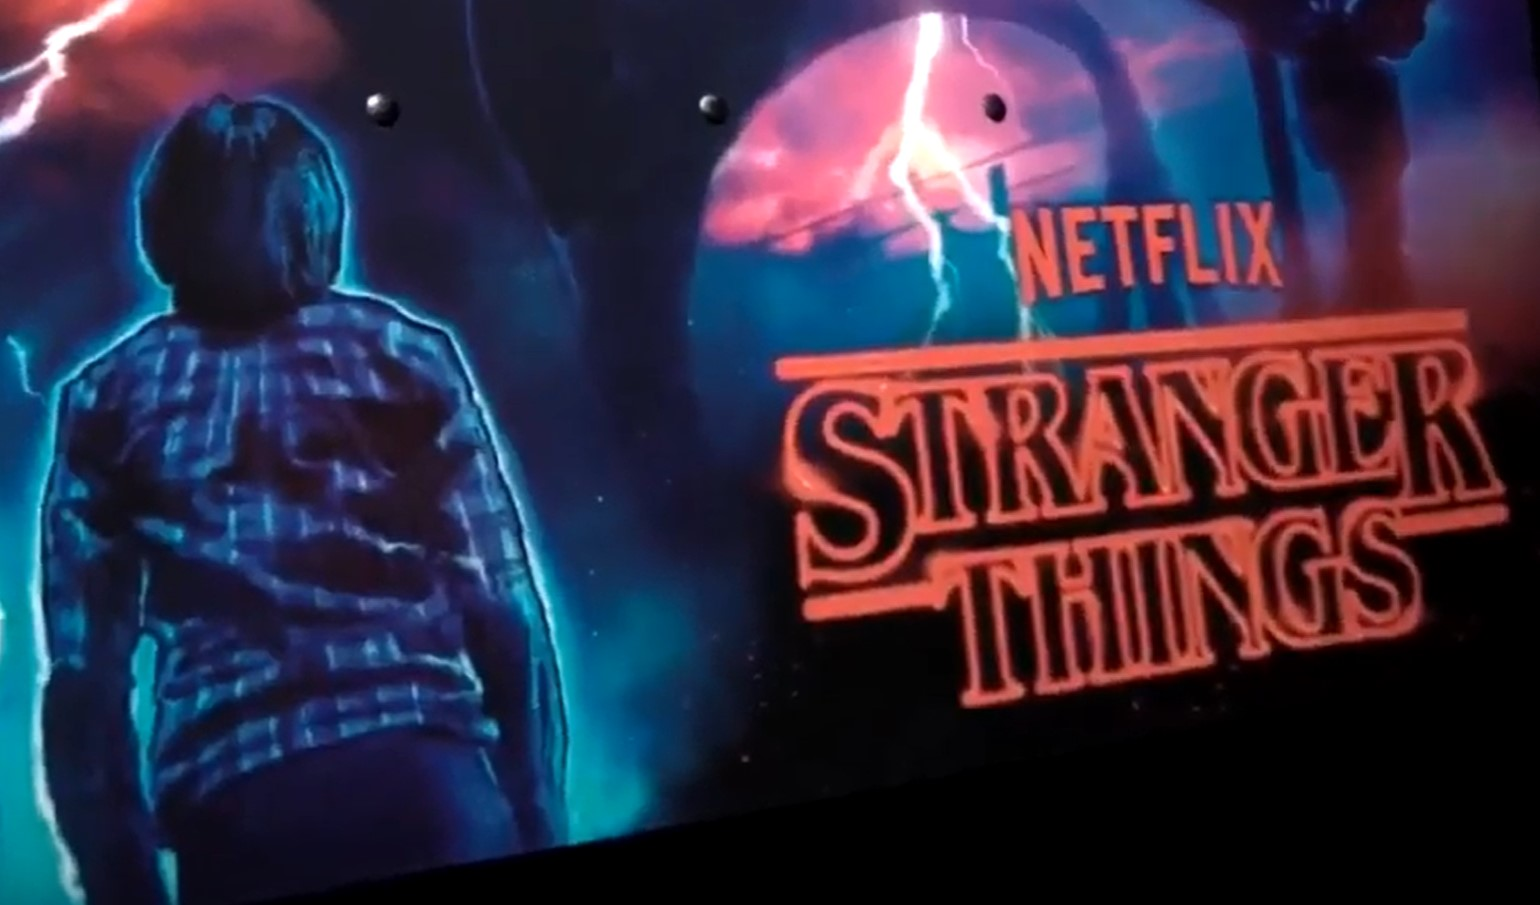 Chuckwurt vs. Stranger Things LE